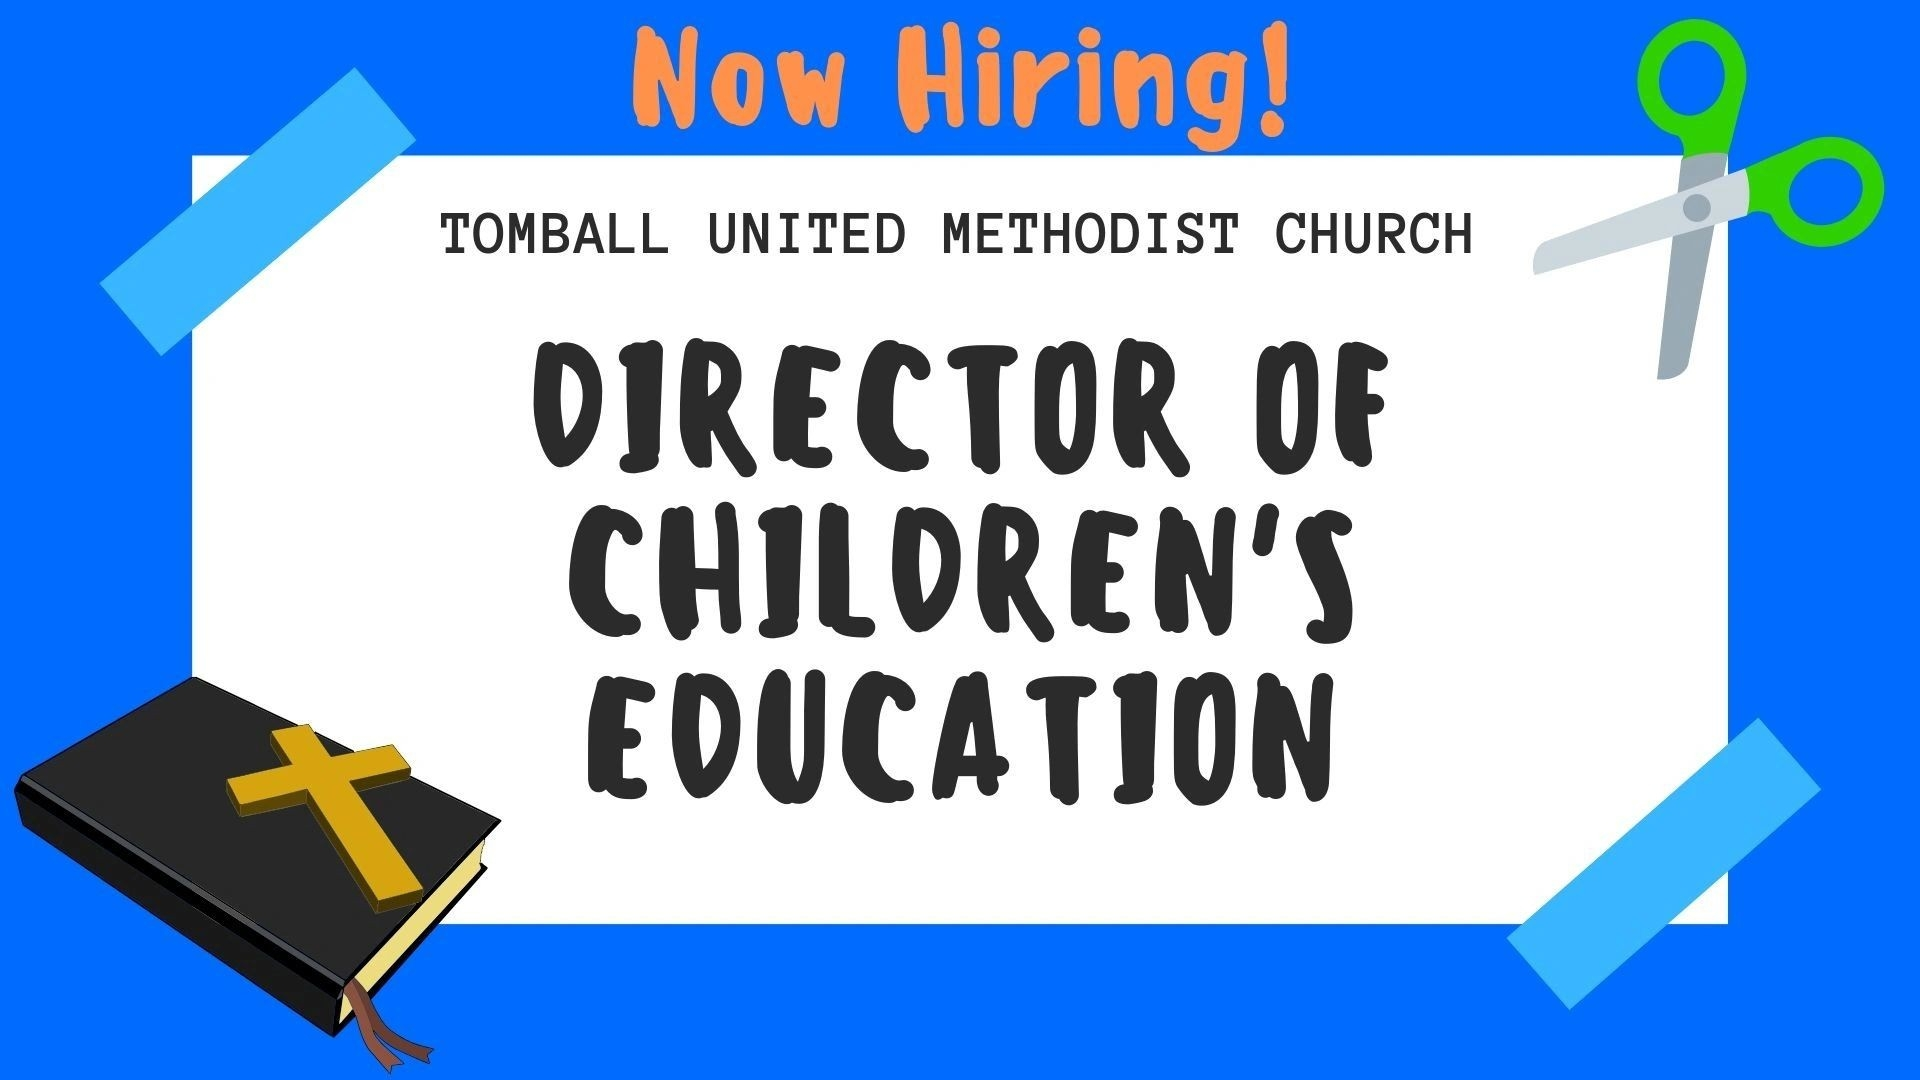 Now Hiring! Director Of Children's Education  Unite Methodist Calender - Christian Calender Year Subjects